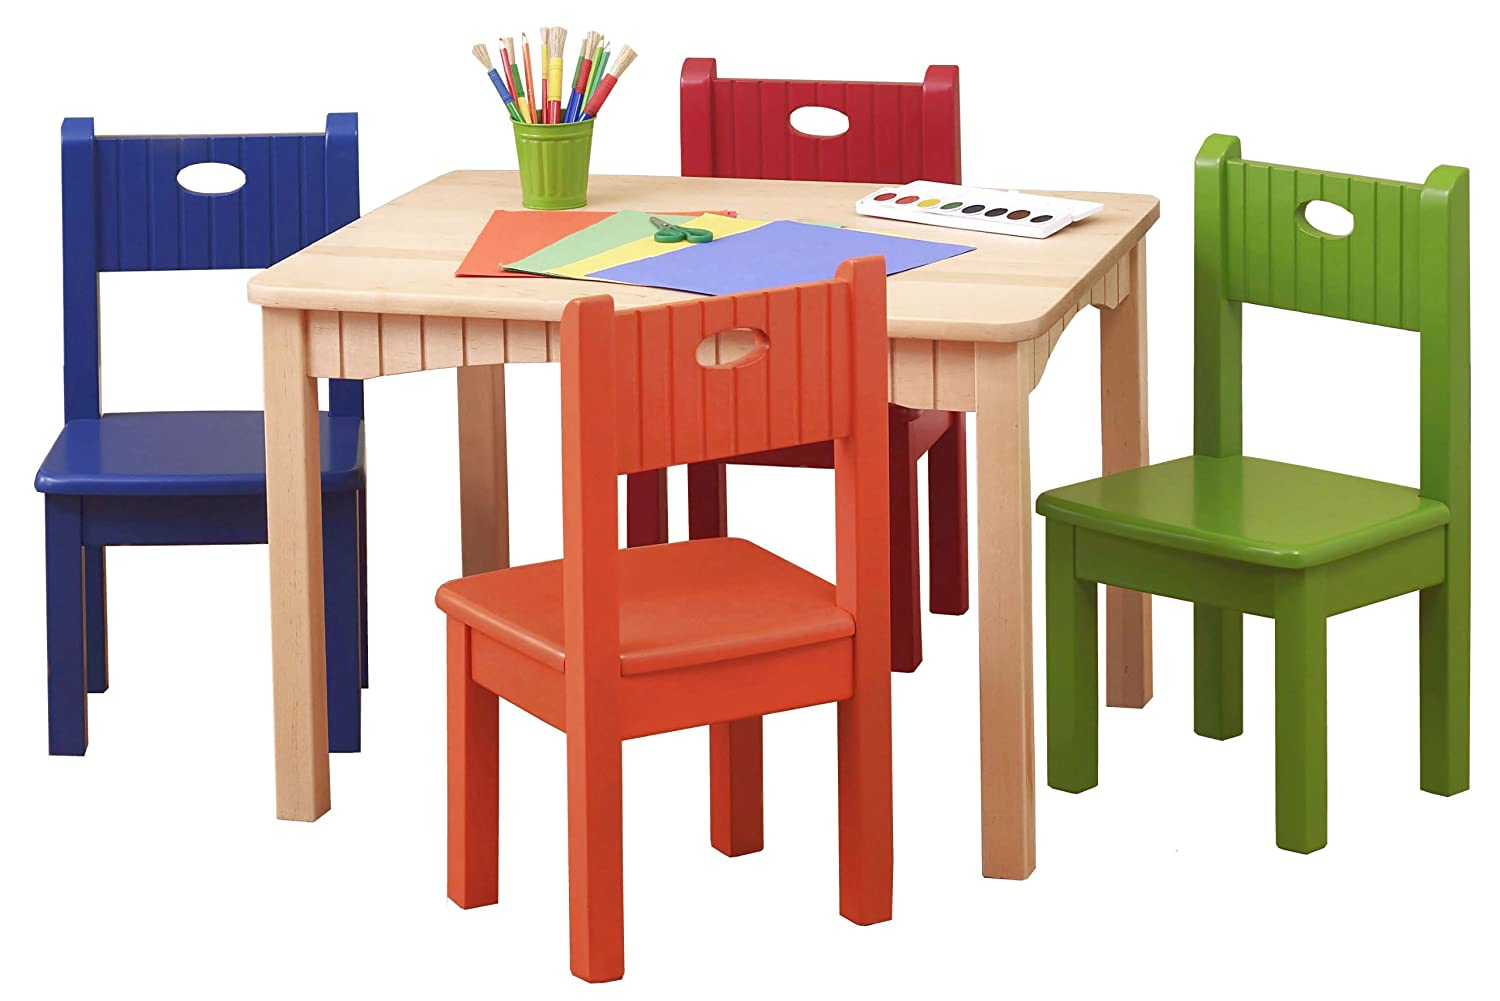 Brilliant Kids Table and Chair Set 1500 x 1001 · 116 kB · jpeg